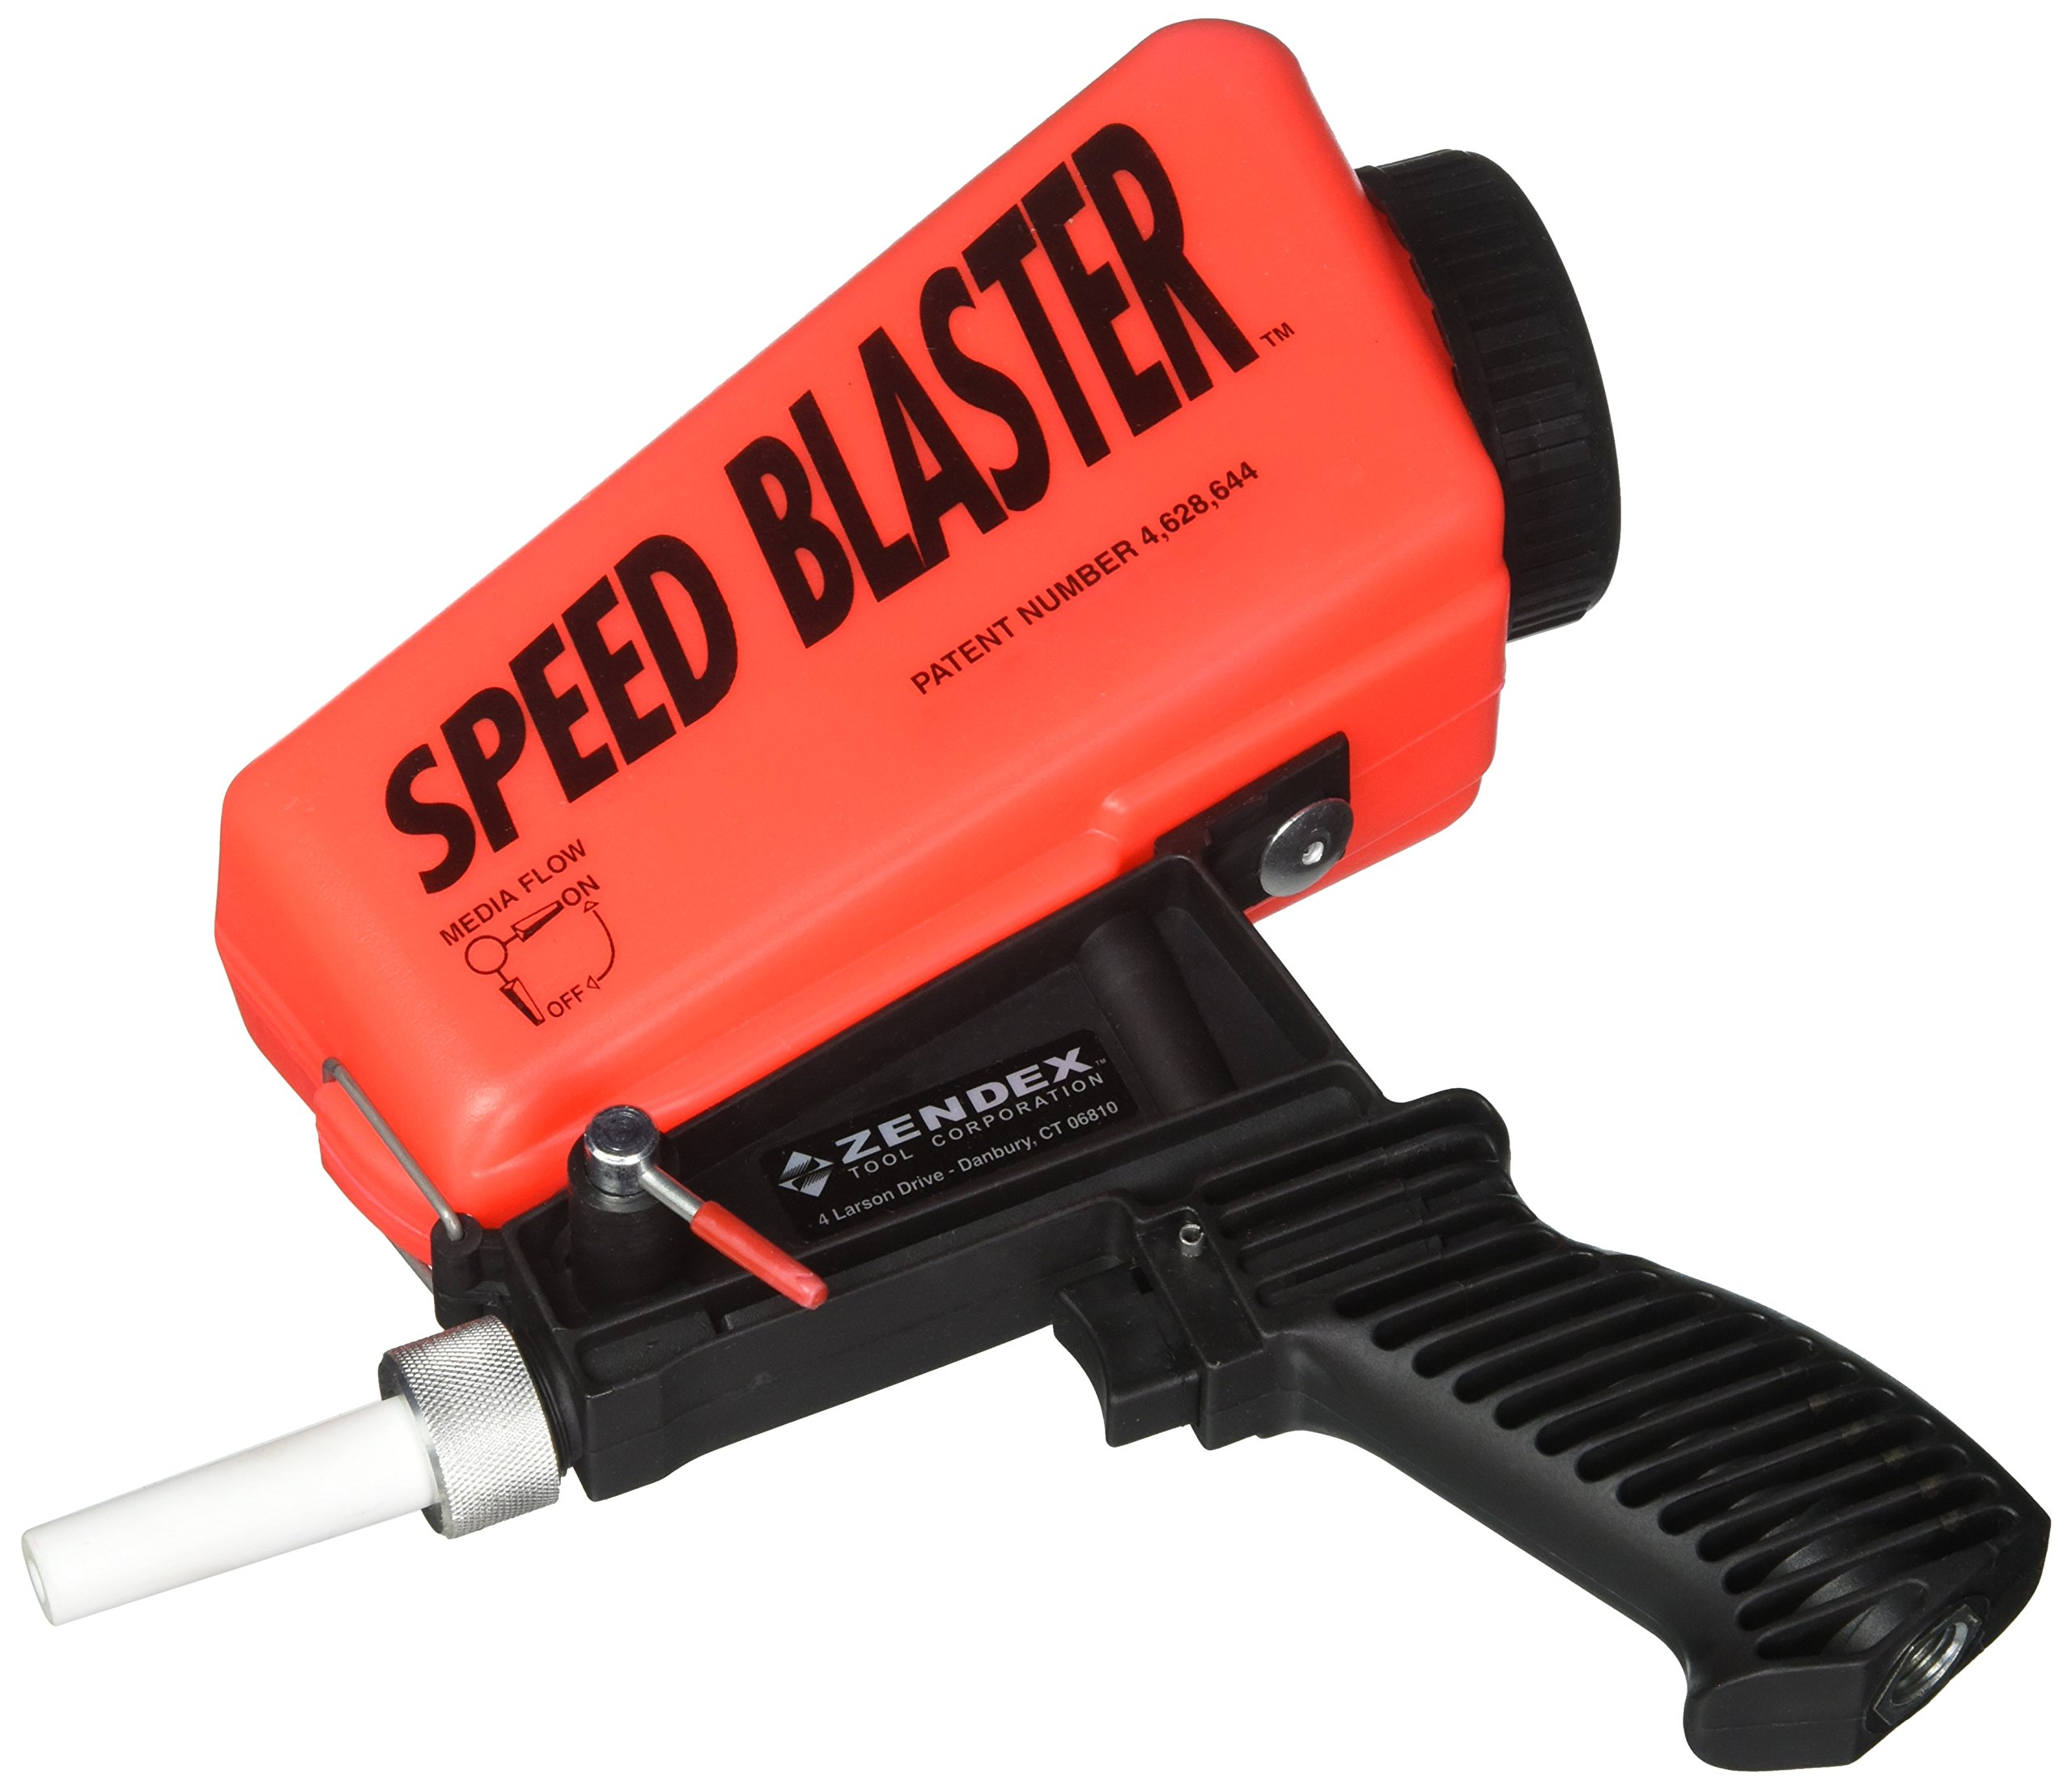 SpeedBlaster Gravity Feed Media Blaster - Red